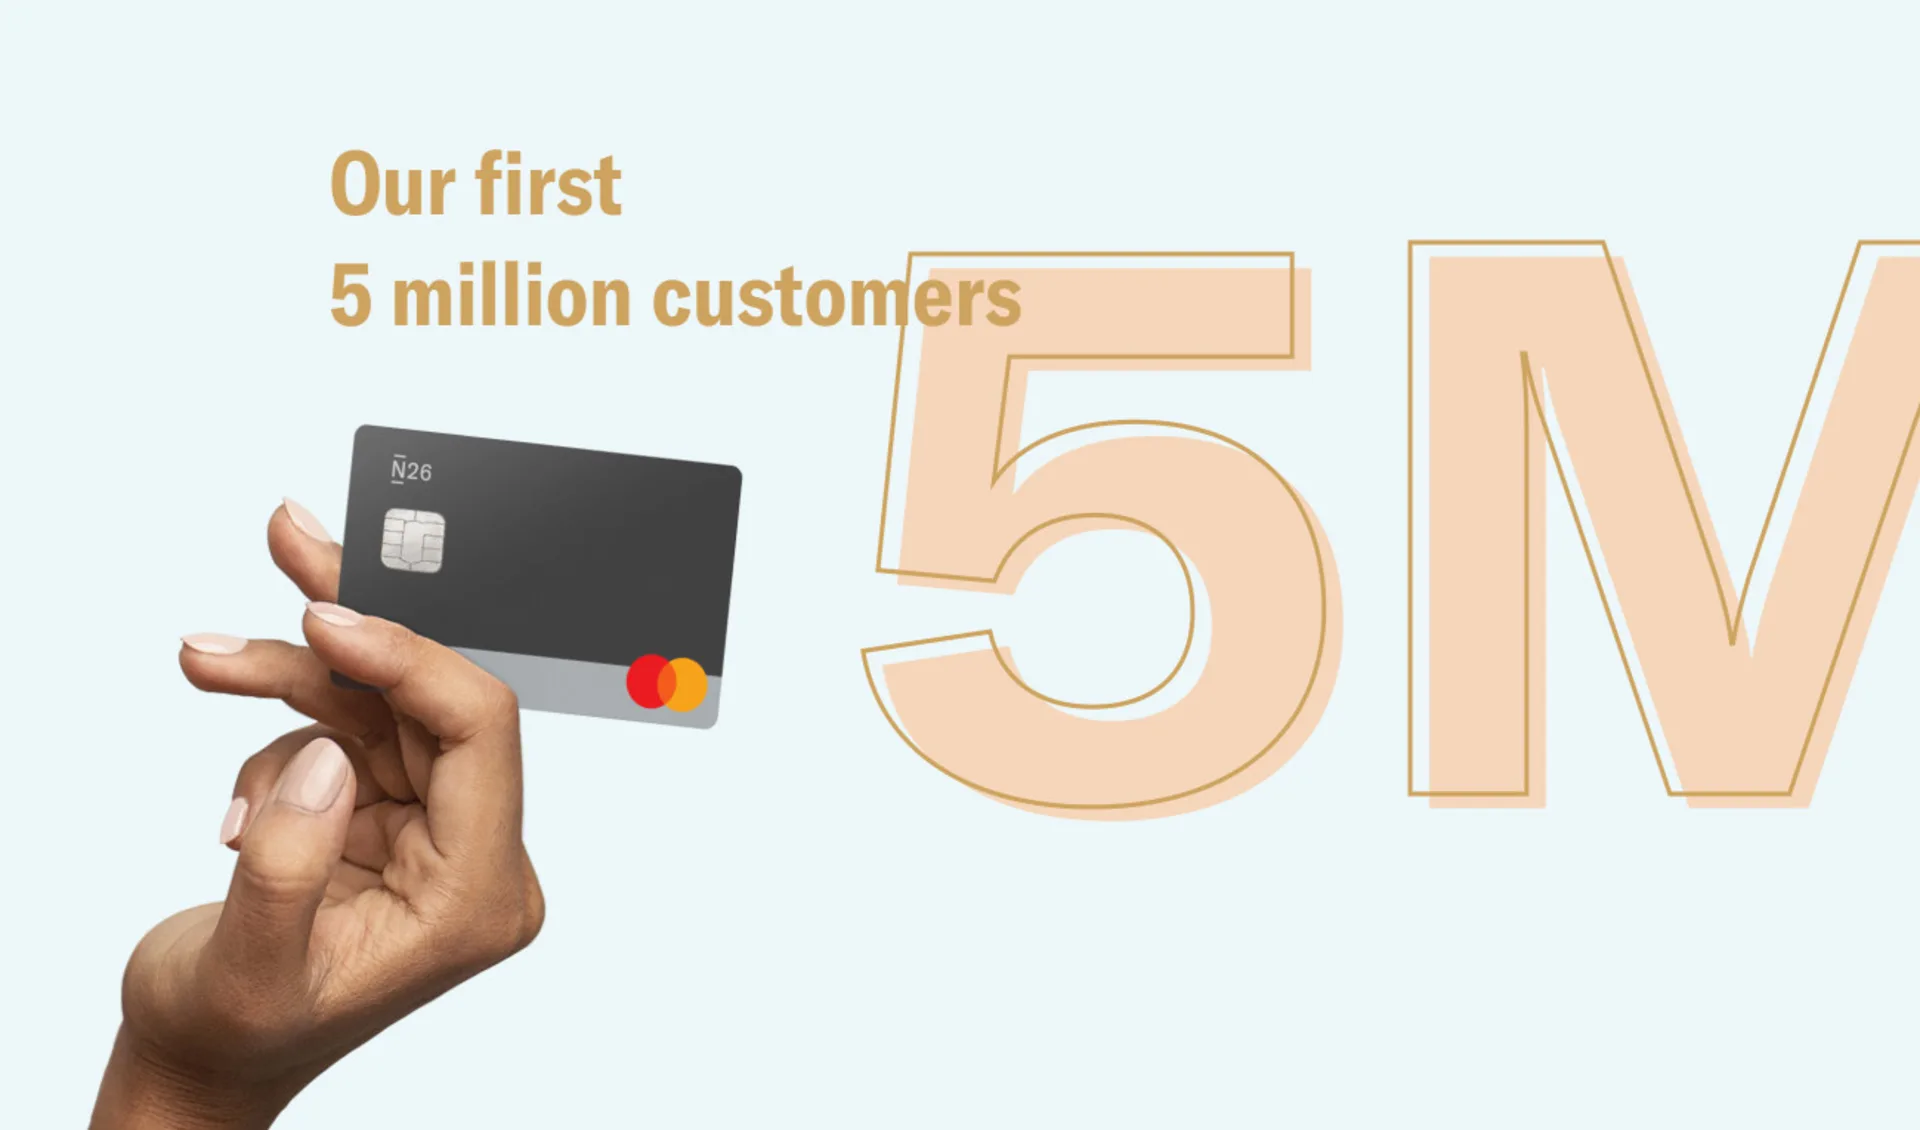 N26 reaches 5 million customers